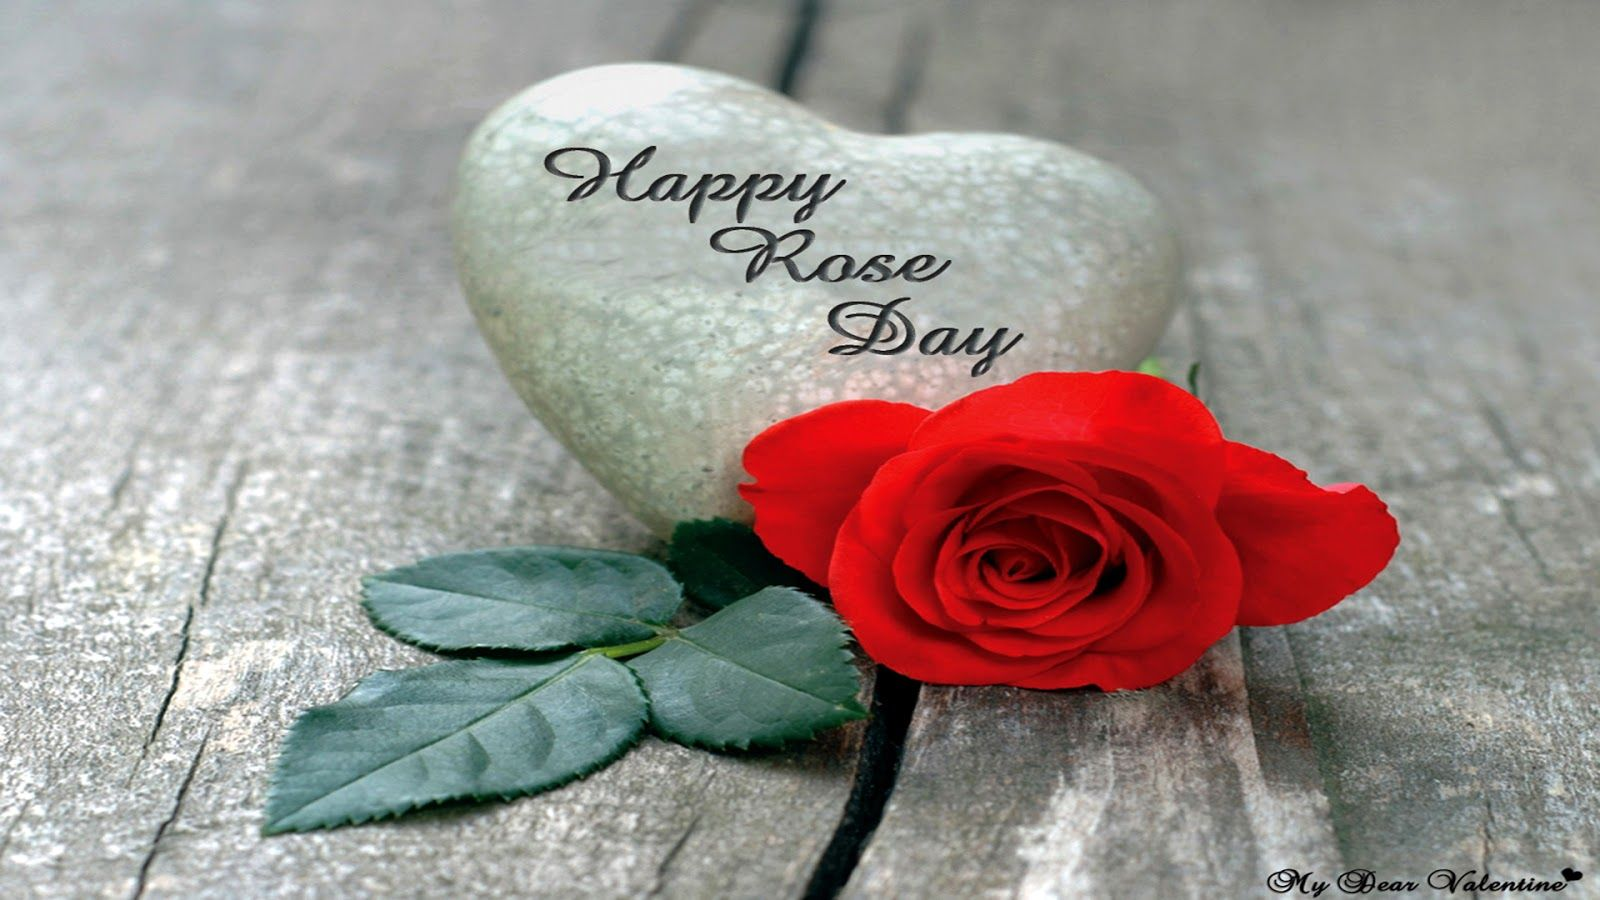 Happy Rose Day Wallpapers HD Download Free 1080p Happy